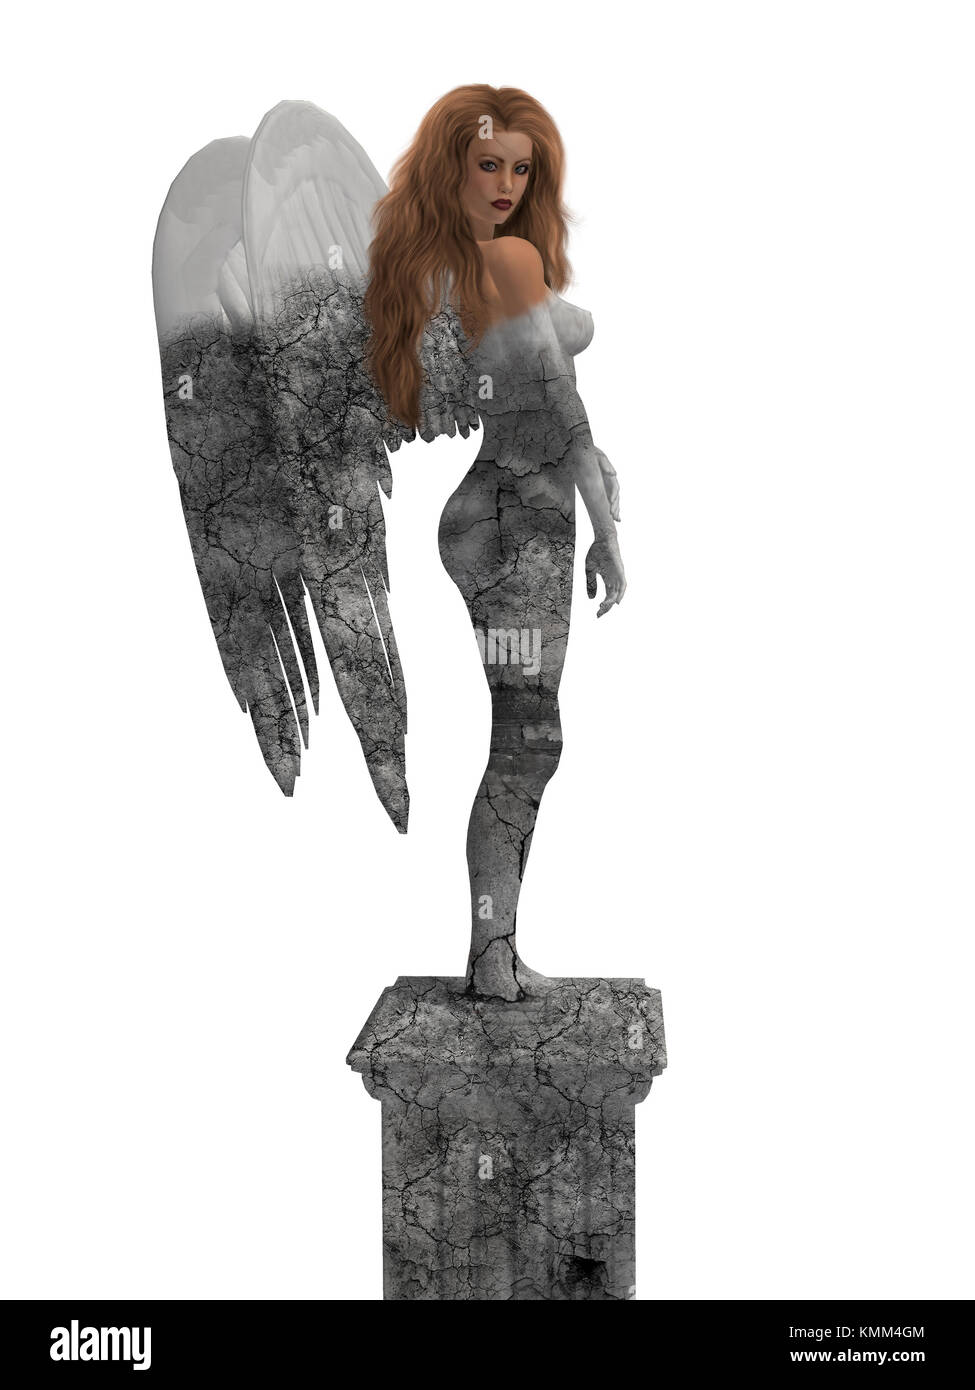 Statue of an angel coming to life - Stock Image